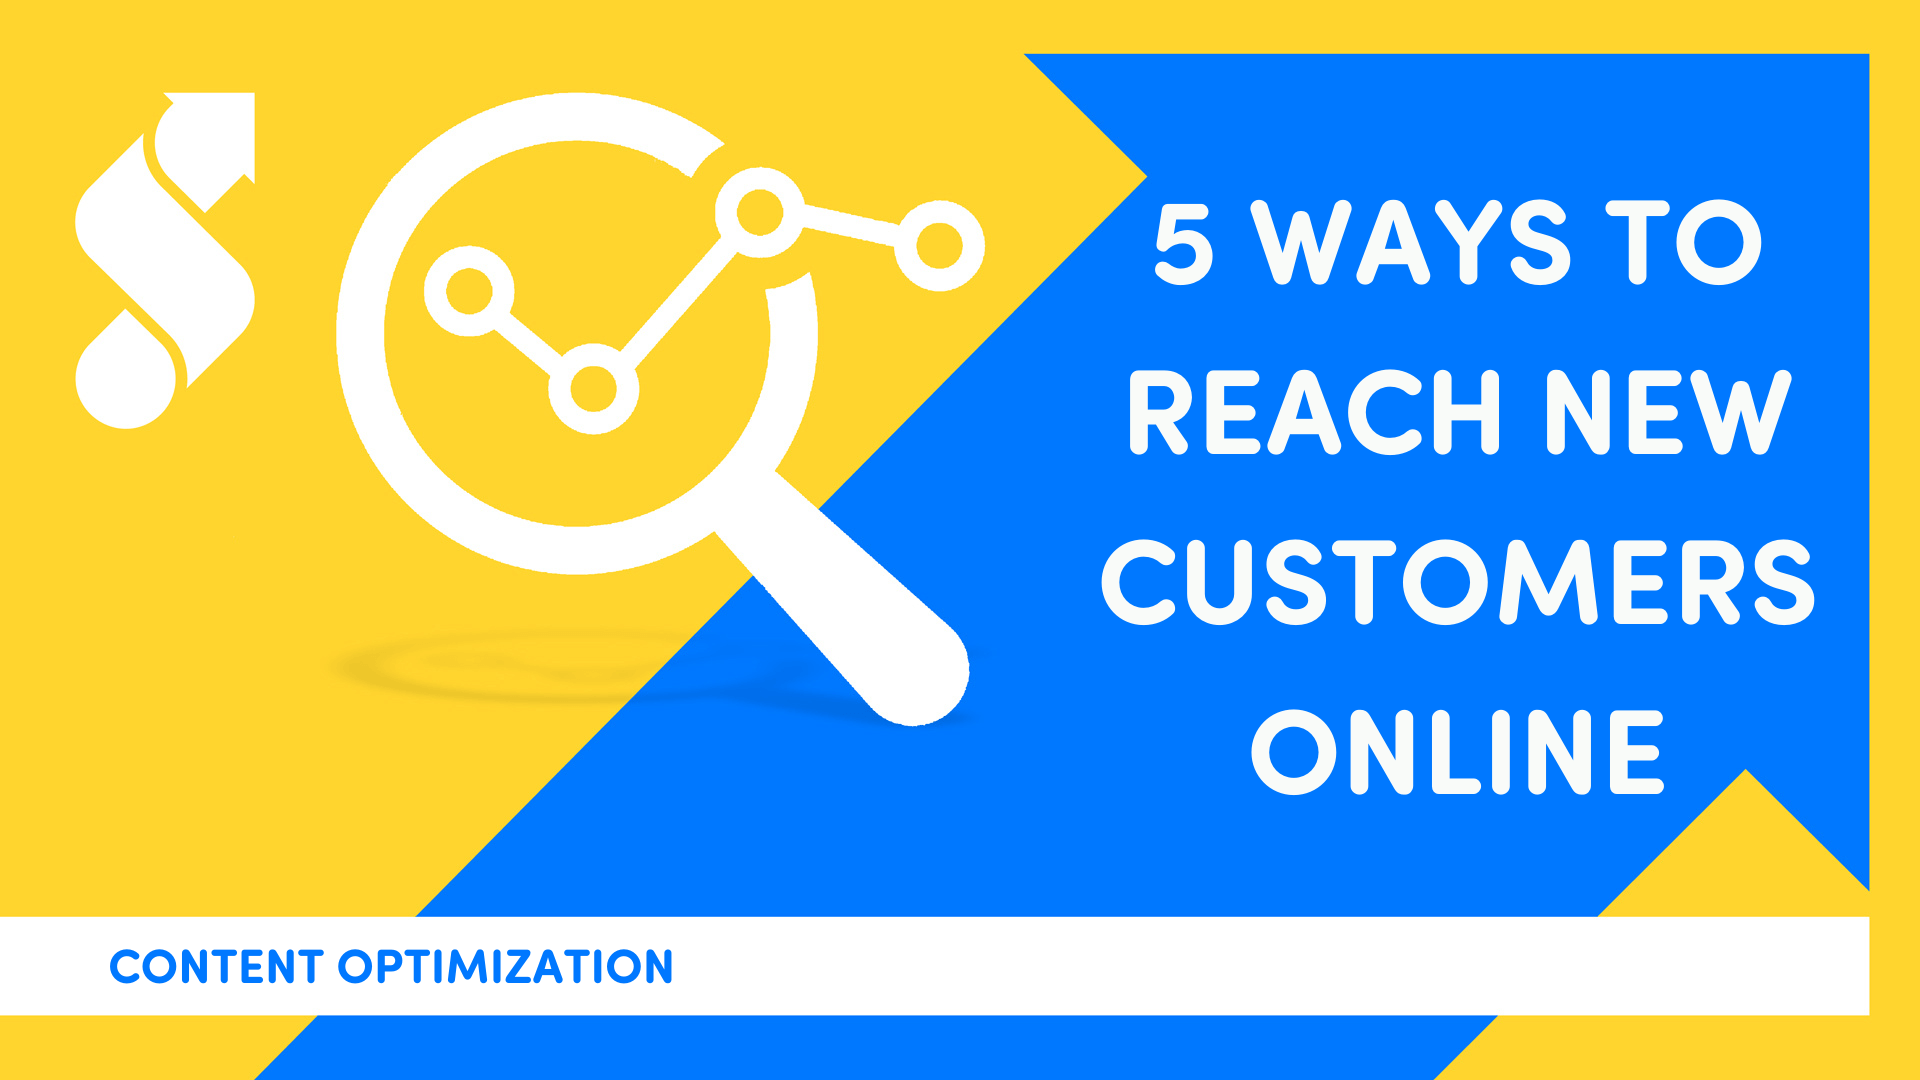 Reach New Customers Online